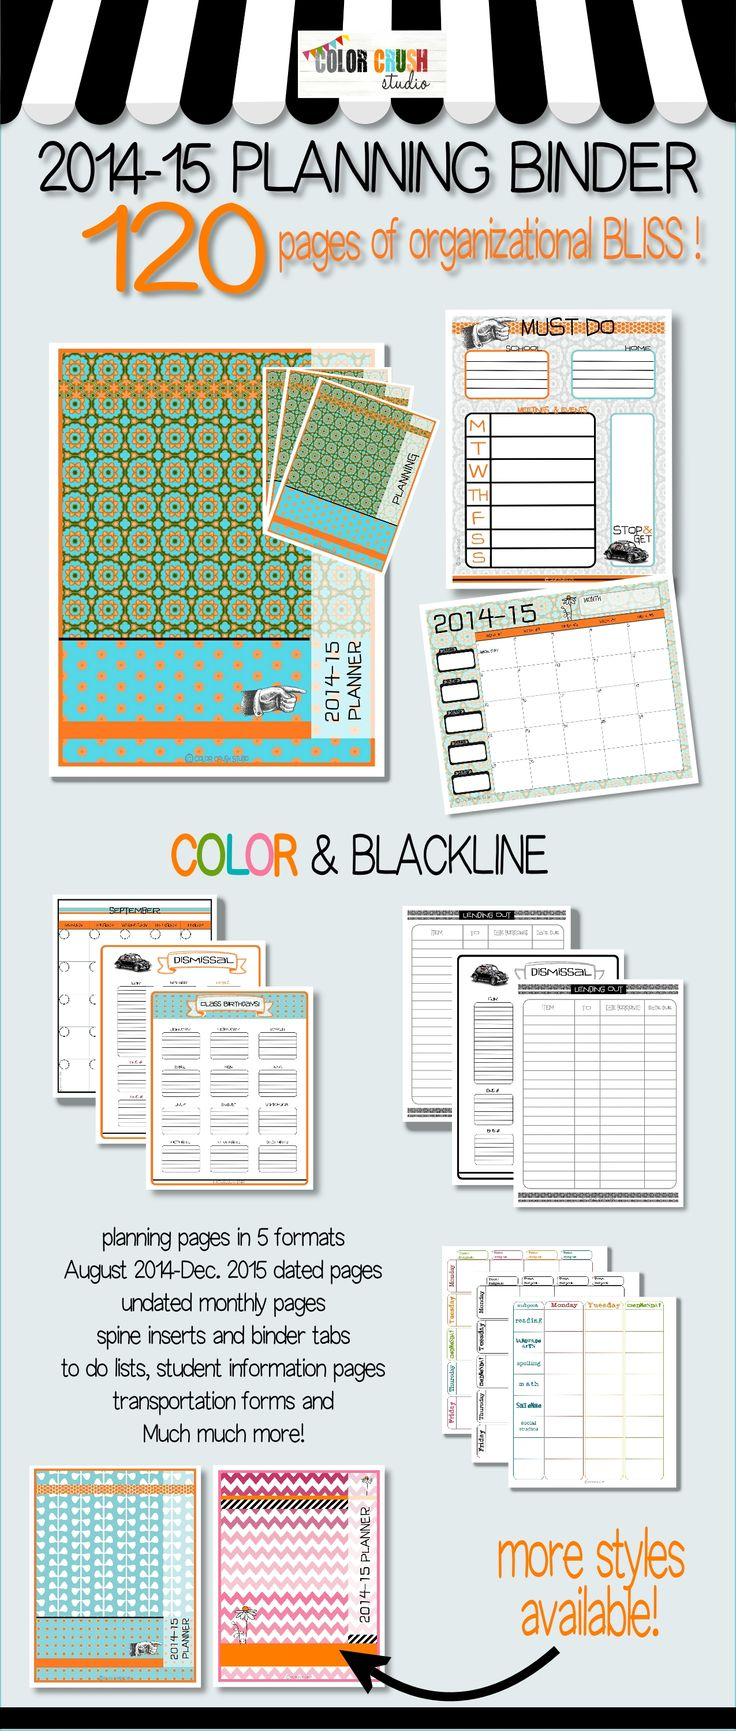 66 best fifth grade images on pinterest school teaching and design does make a difference lets face it you are going to be looking at this planner a great deal so it must be well designed and functional fandeluxe Gallery